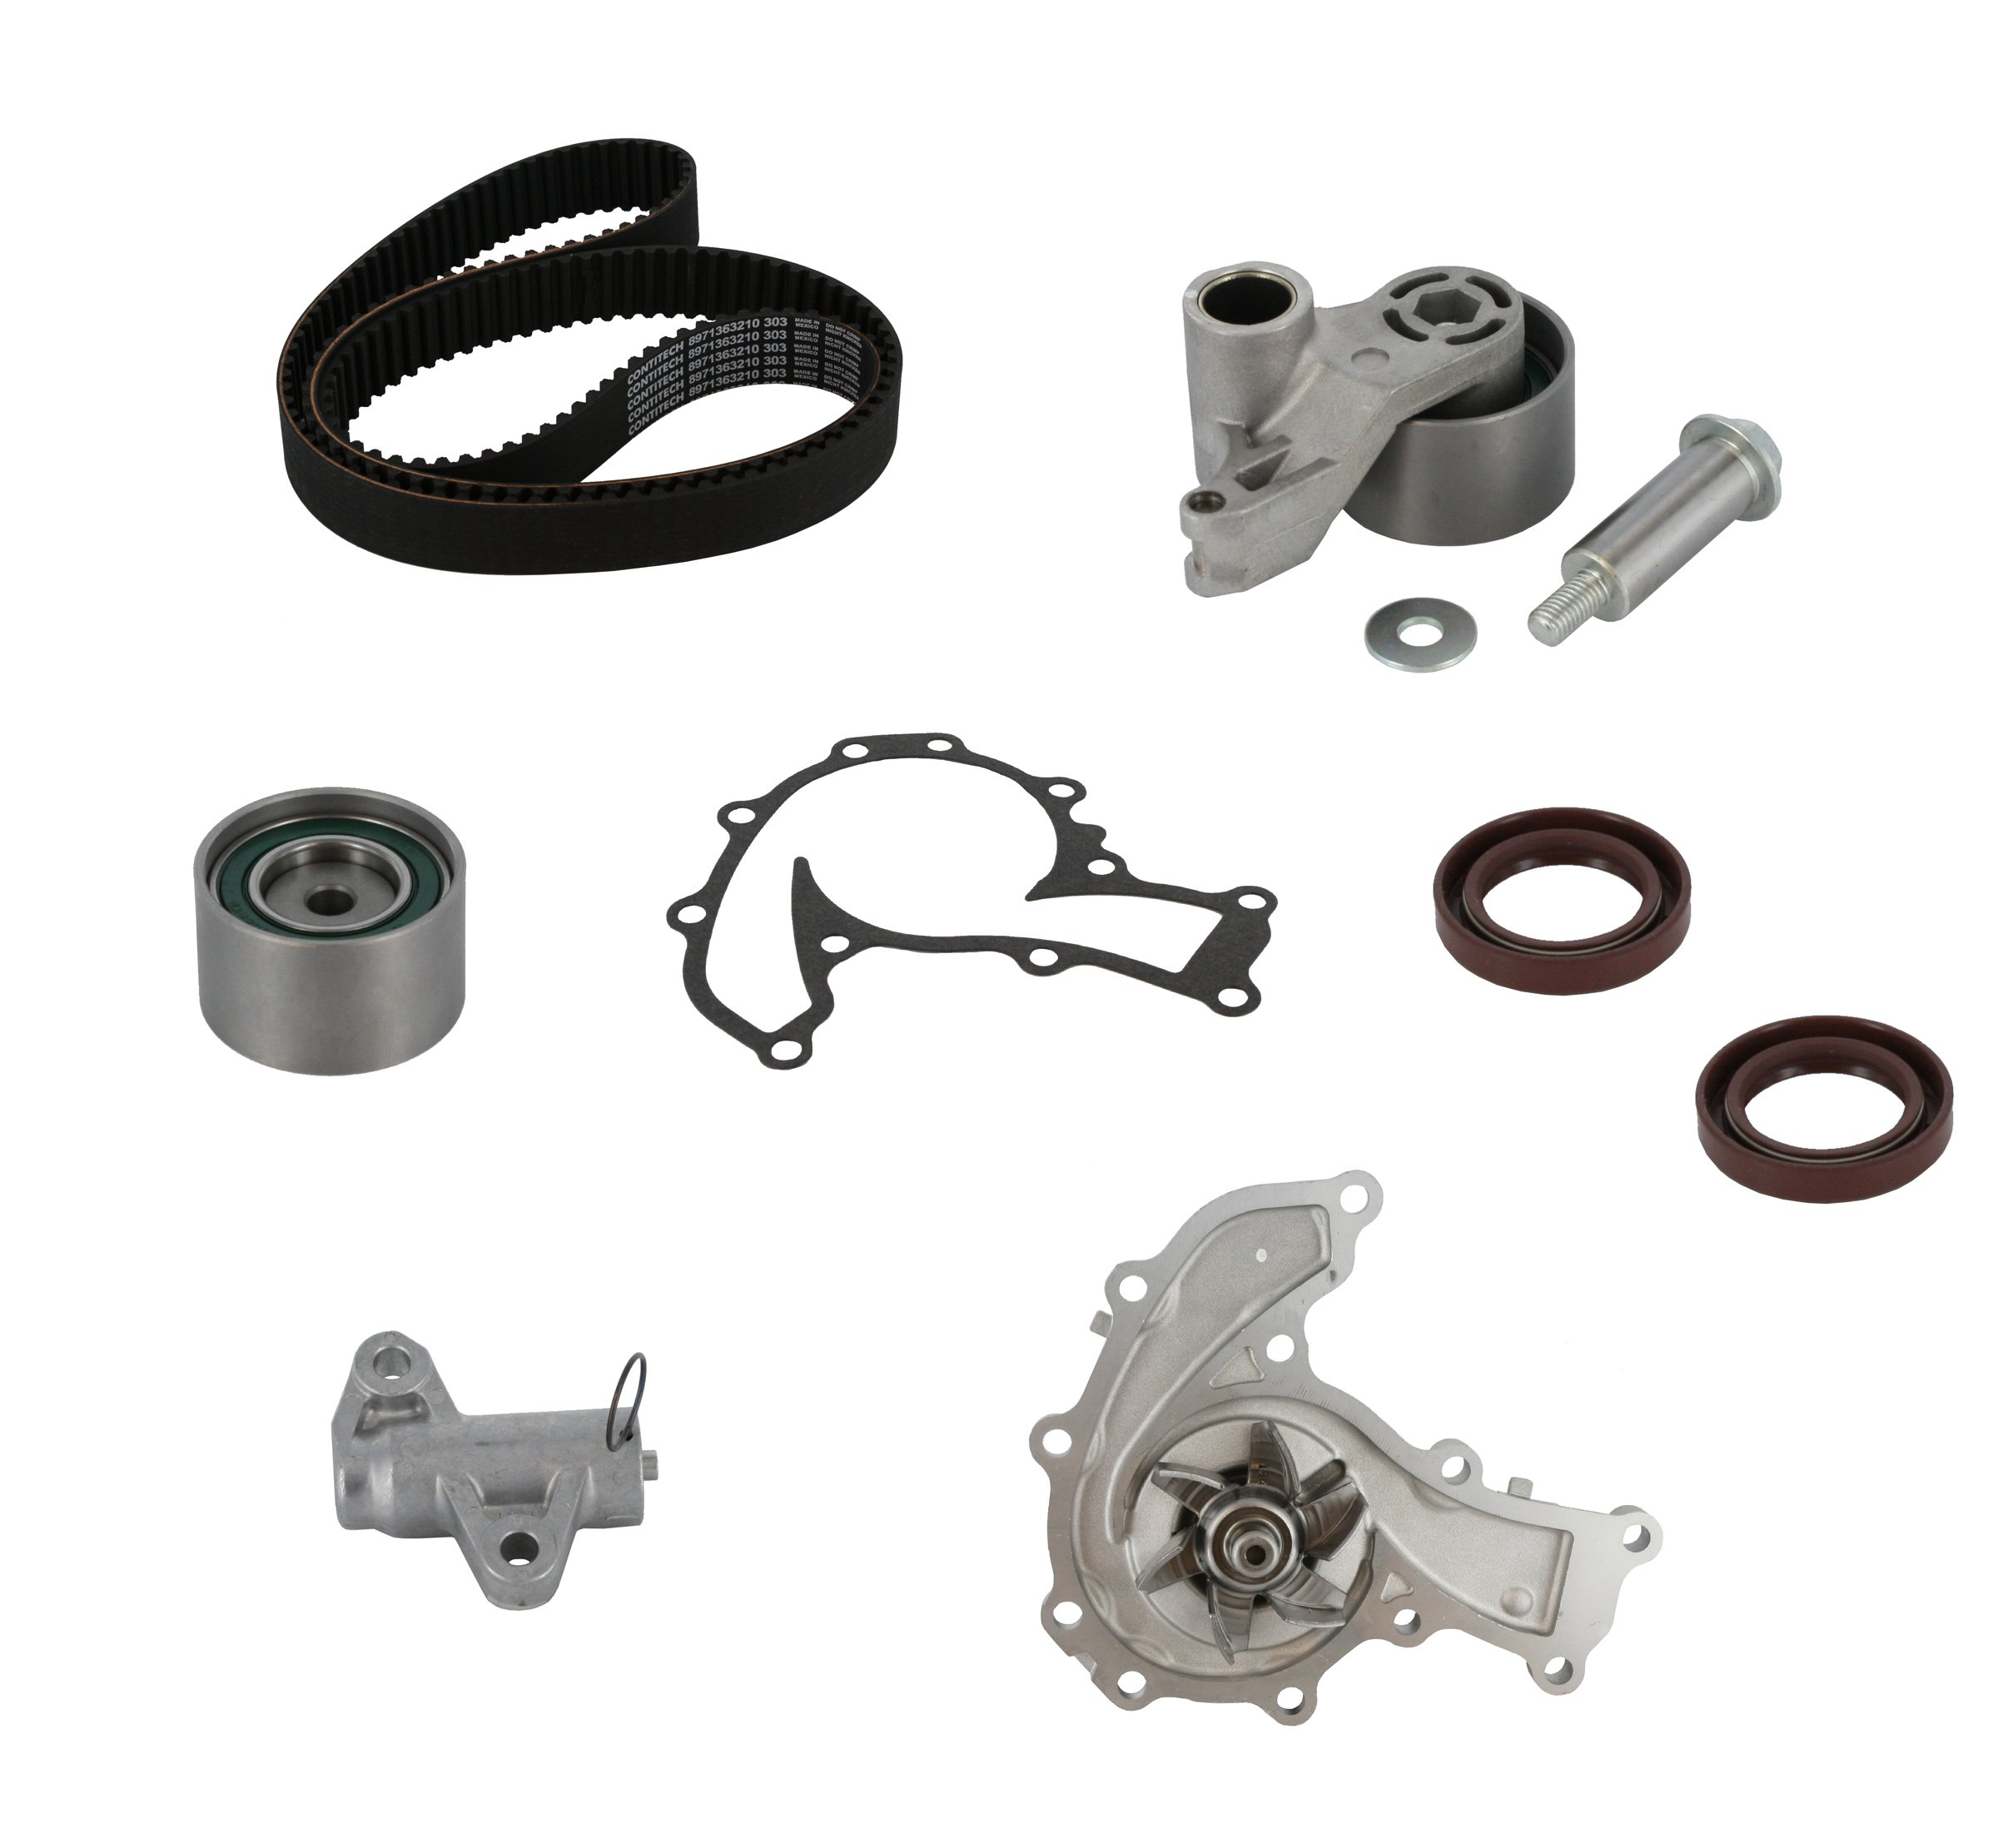 Continental Contitech Pp303lk1 Pro Series Plus Timing Belt Kit 1999 Isuzu Rodeo Water Pump With Pumpcontinental